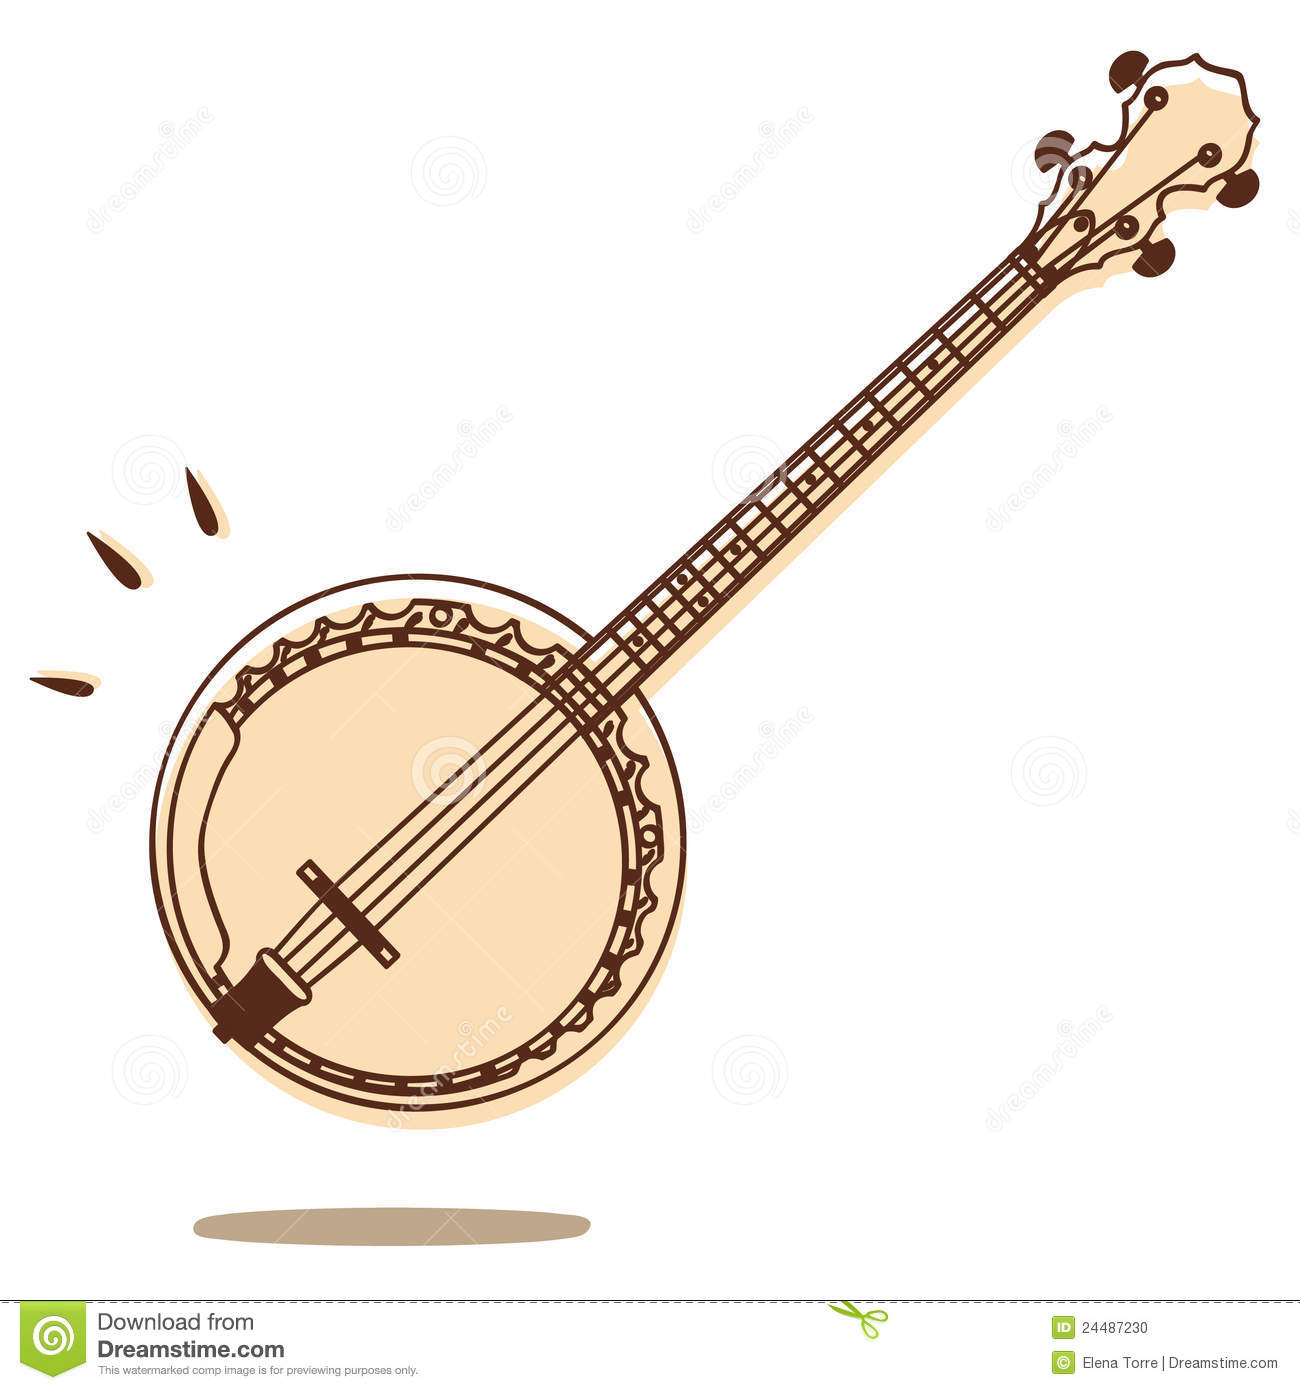 Illustrations of banjo isolated on white background + vector eps file.